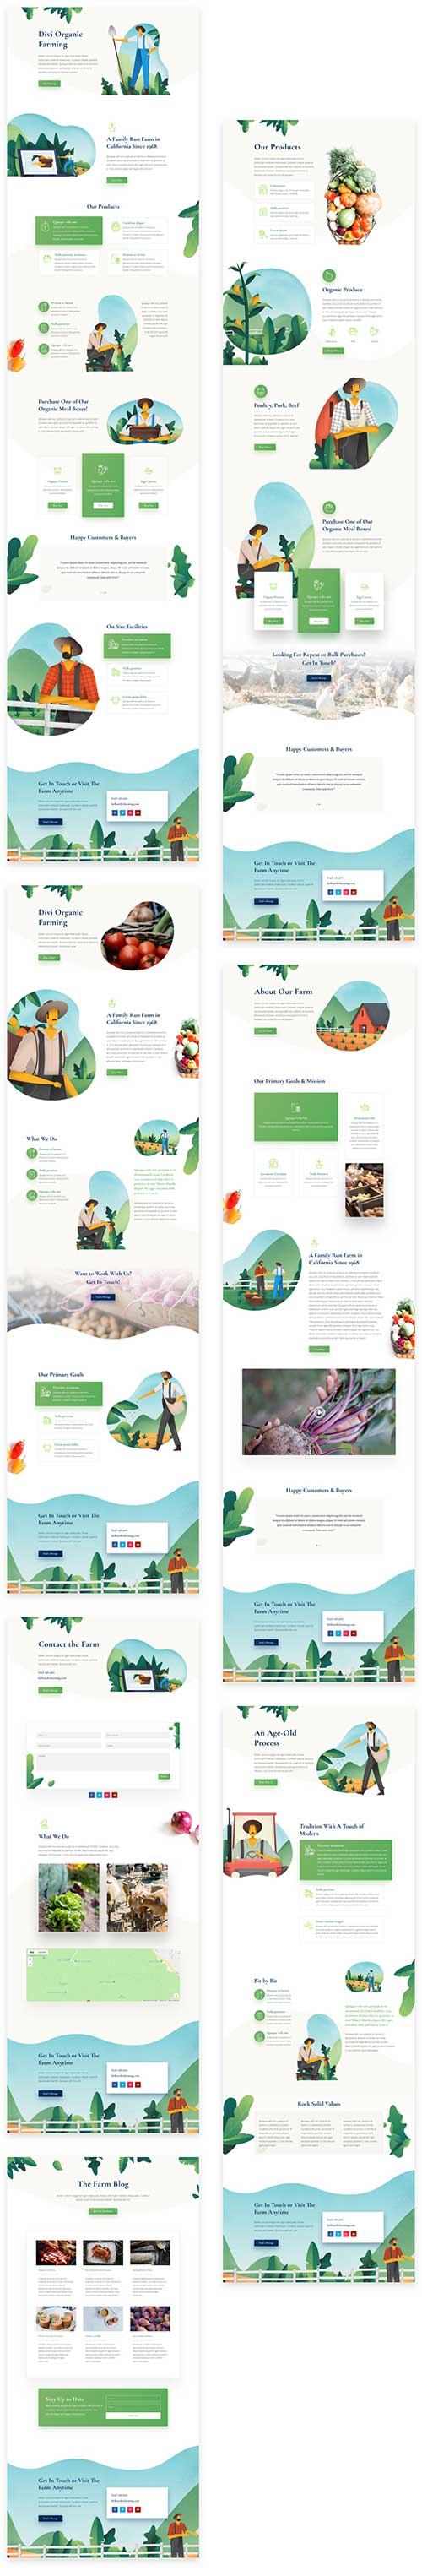 divi farmers layout